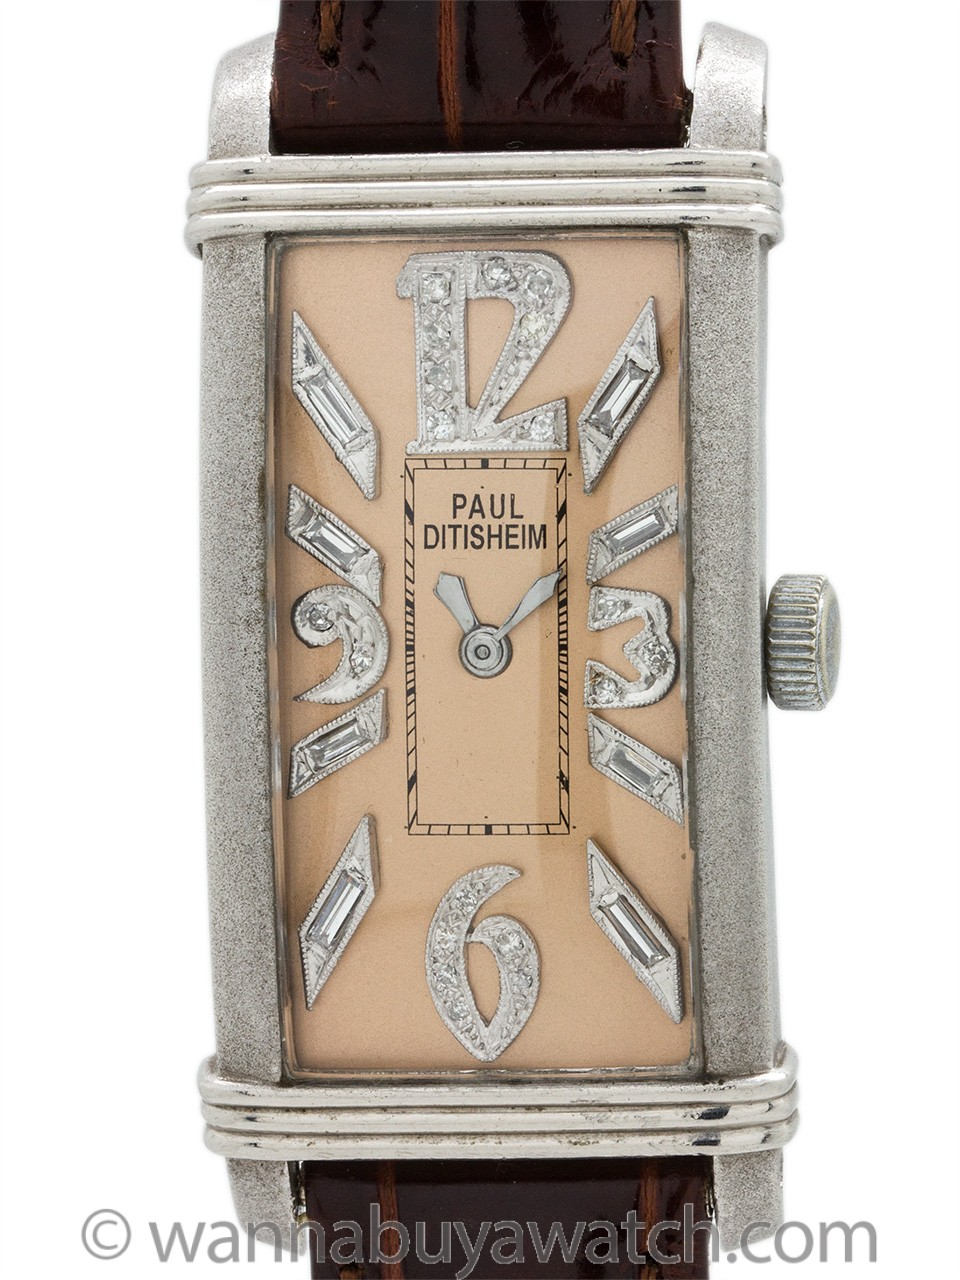 Paul Ditisheim Platinum Art Deco Diamond Dial circa 1930's